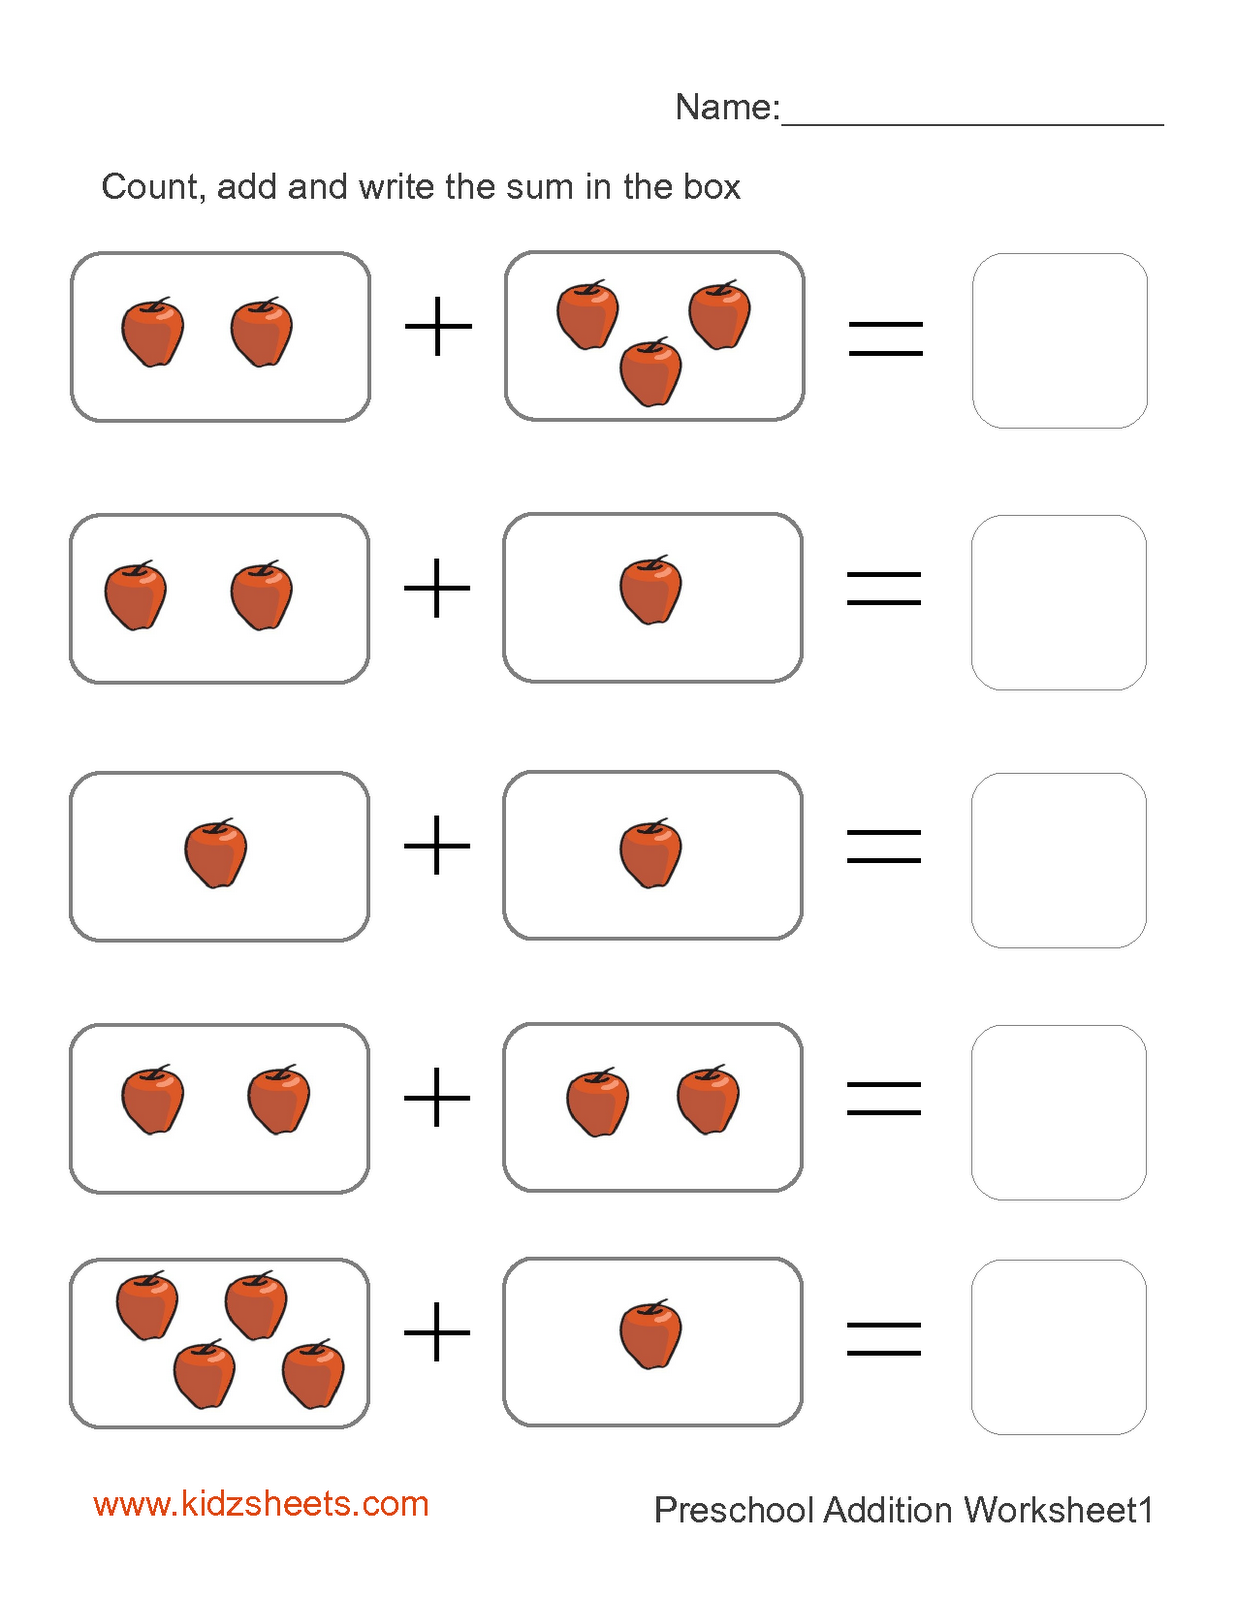 Preschool Addition Worksheet1